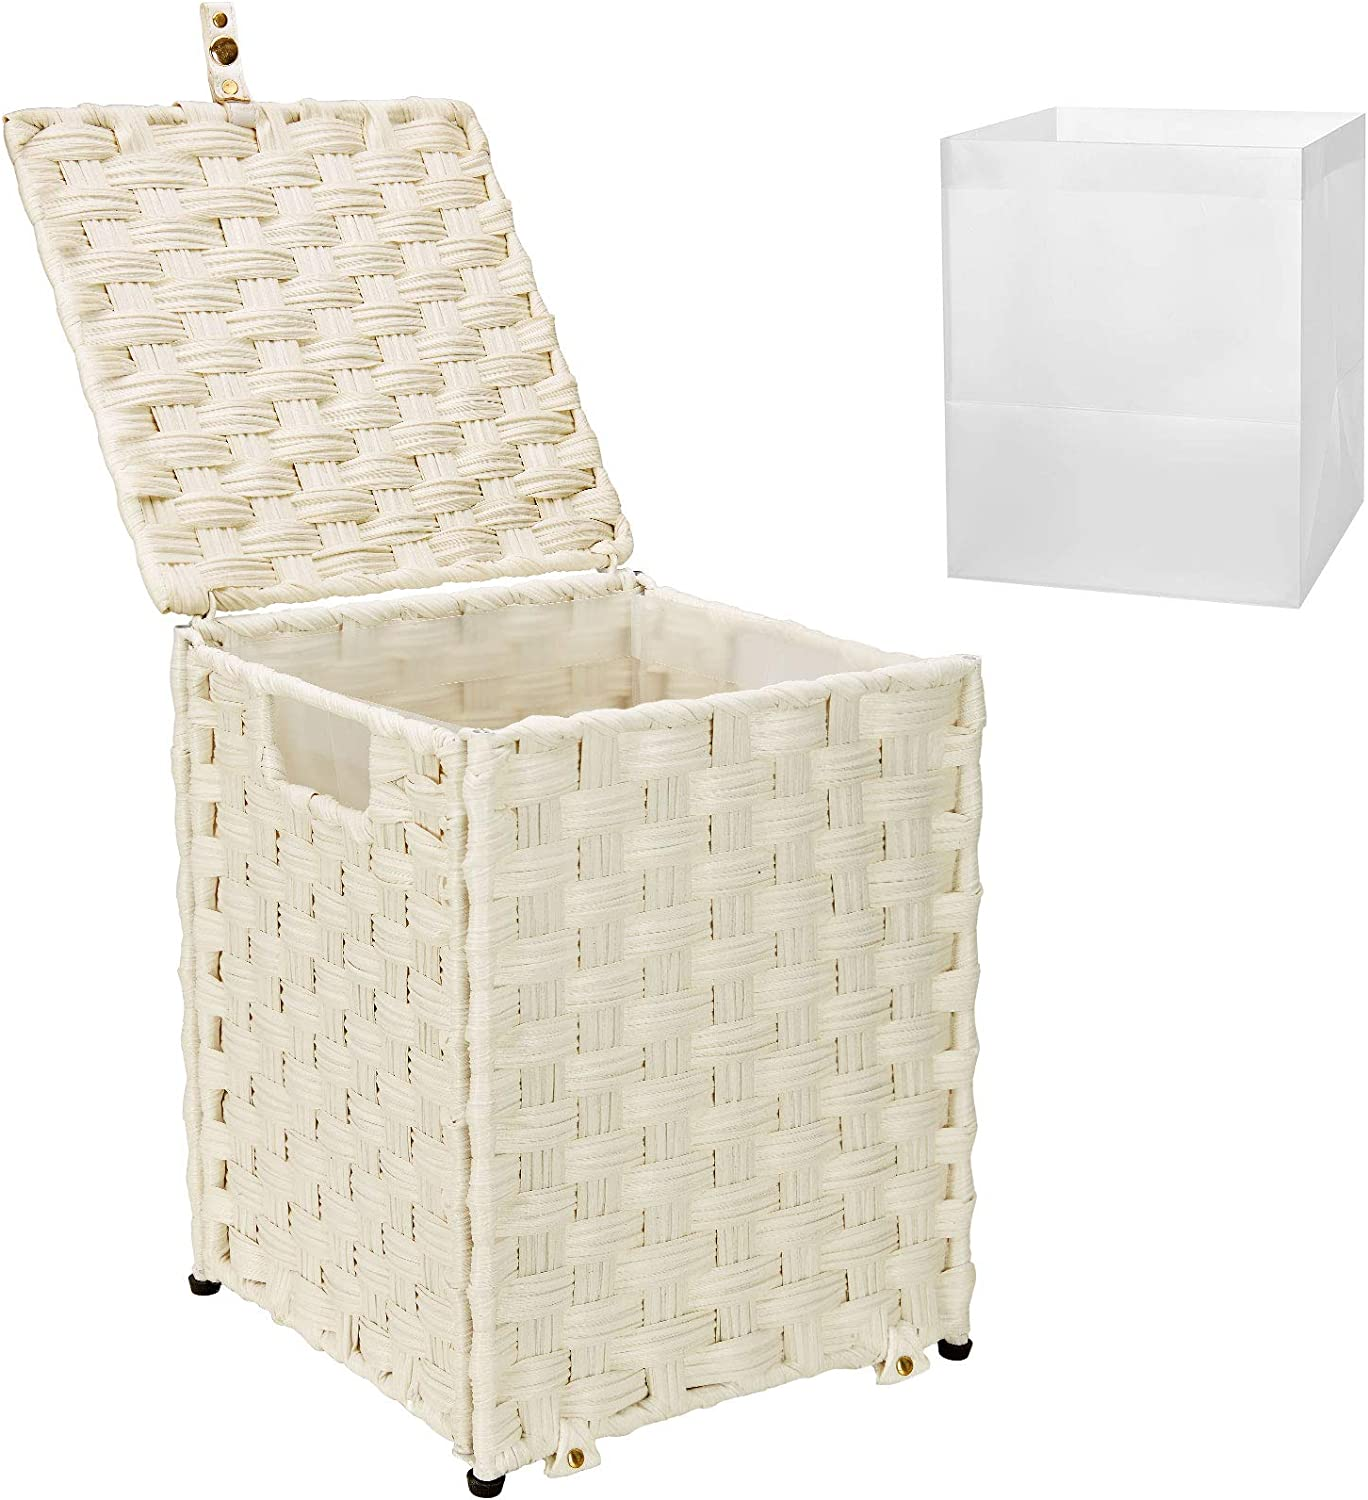 Greenstell Waste Basket with Lid and 2 Replaceable Liners, Hand Woven Basket with Handles, Home Office Paper Wastebasket, Garbage Container Bin for Bedroom, Bathroom, Utility Rooms Pack of 1, White